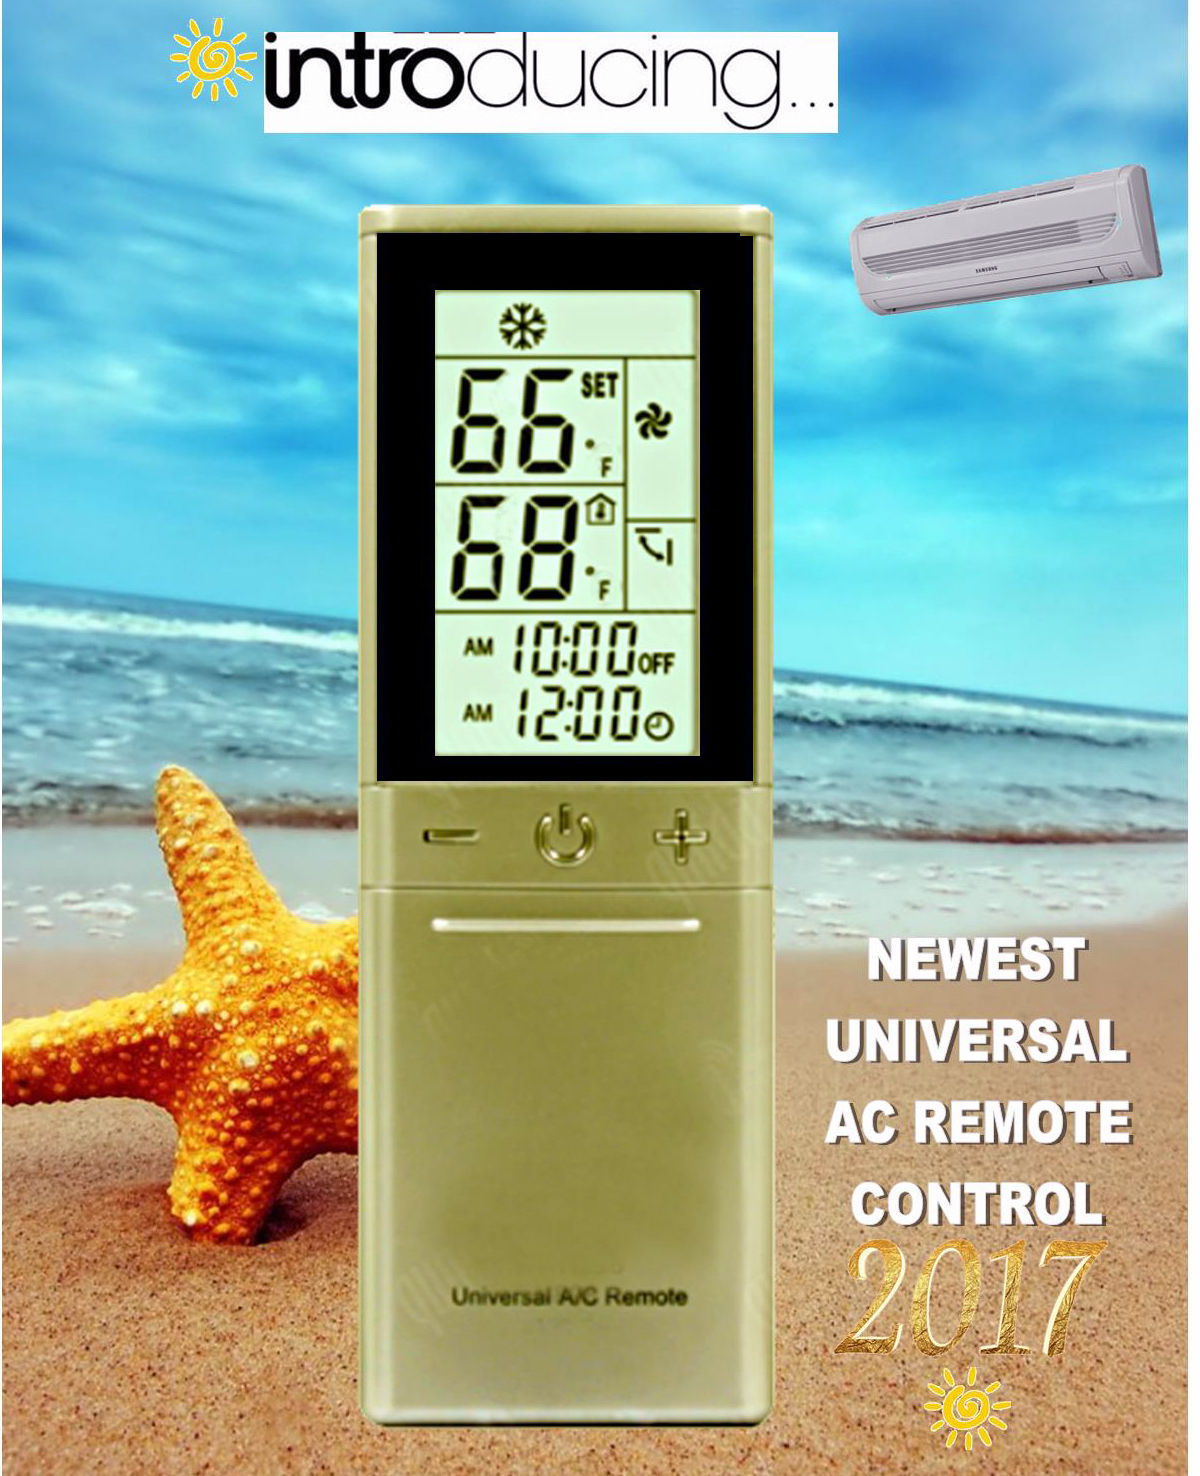 Universal AC Remote For and 31 similar items